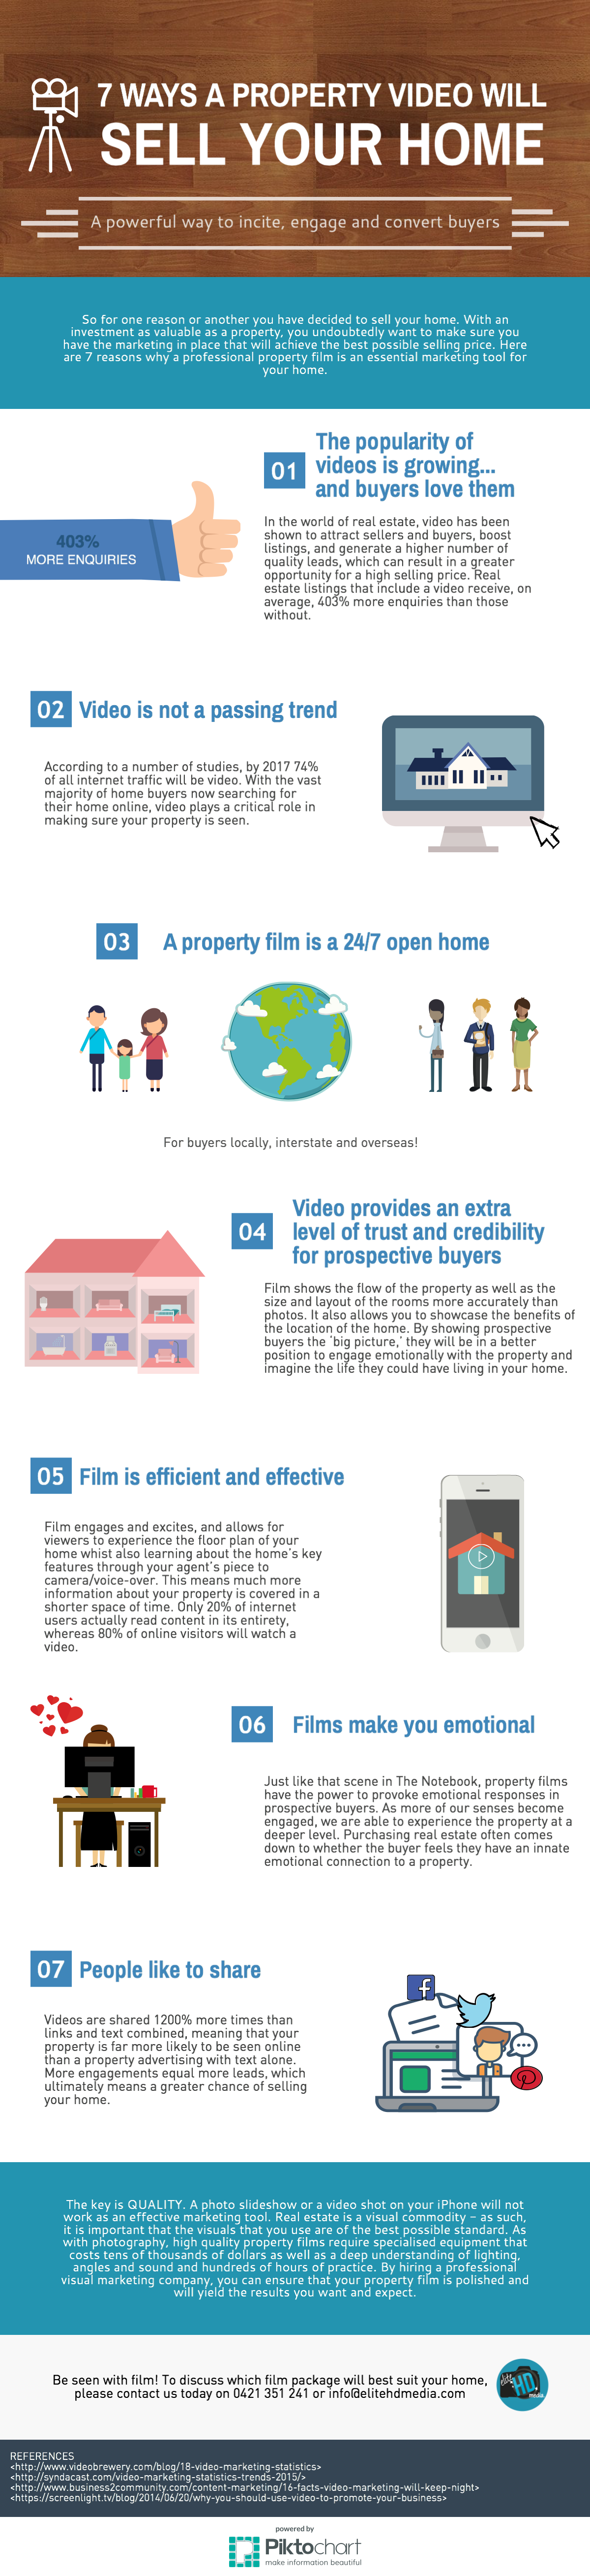 How property video will sell your home infographic